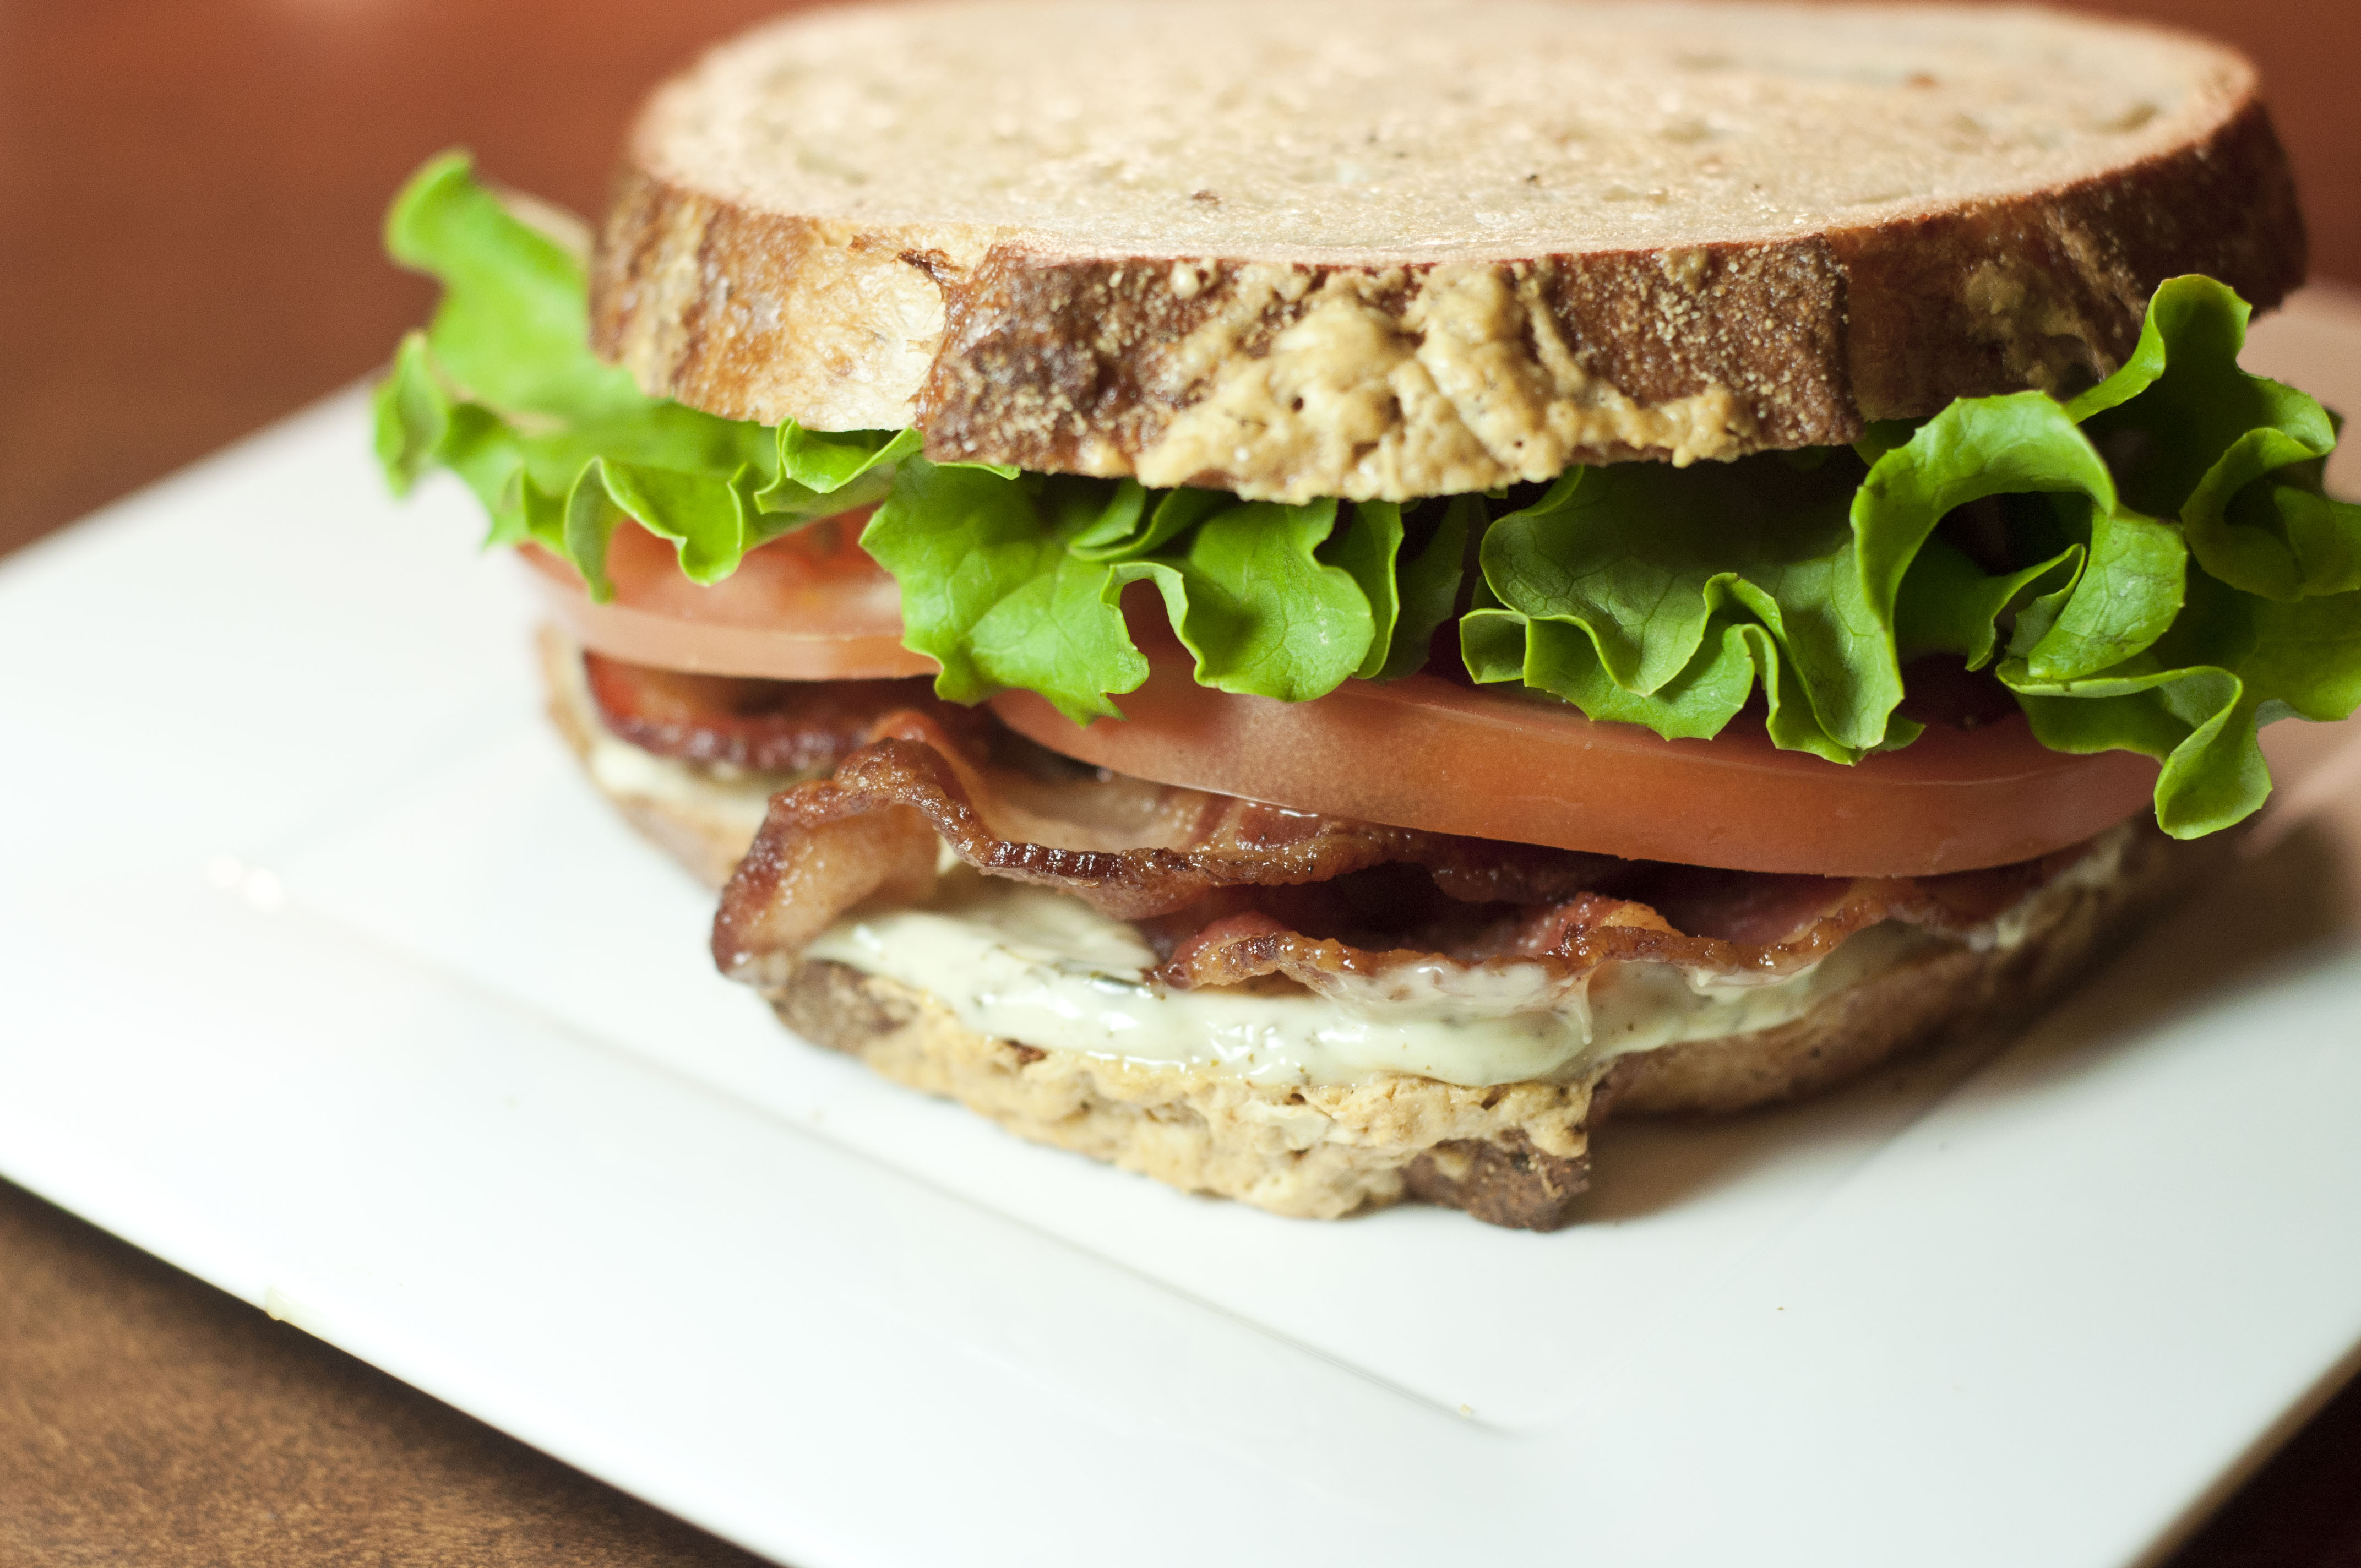 this picture is of a delicious BLT on artisan bread with pesto mayonnaise